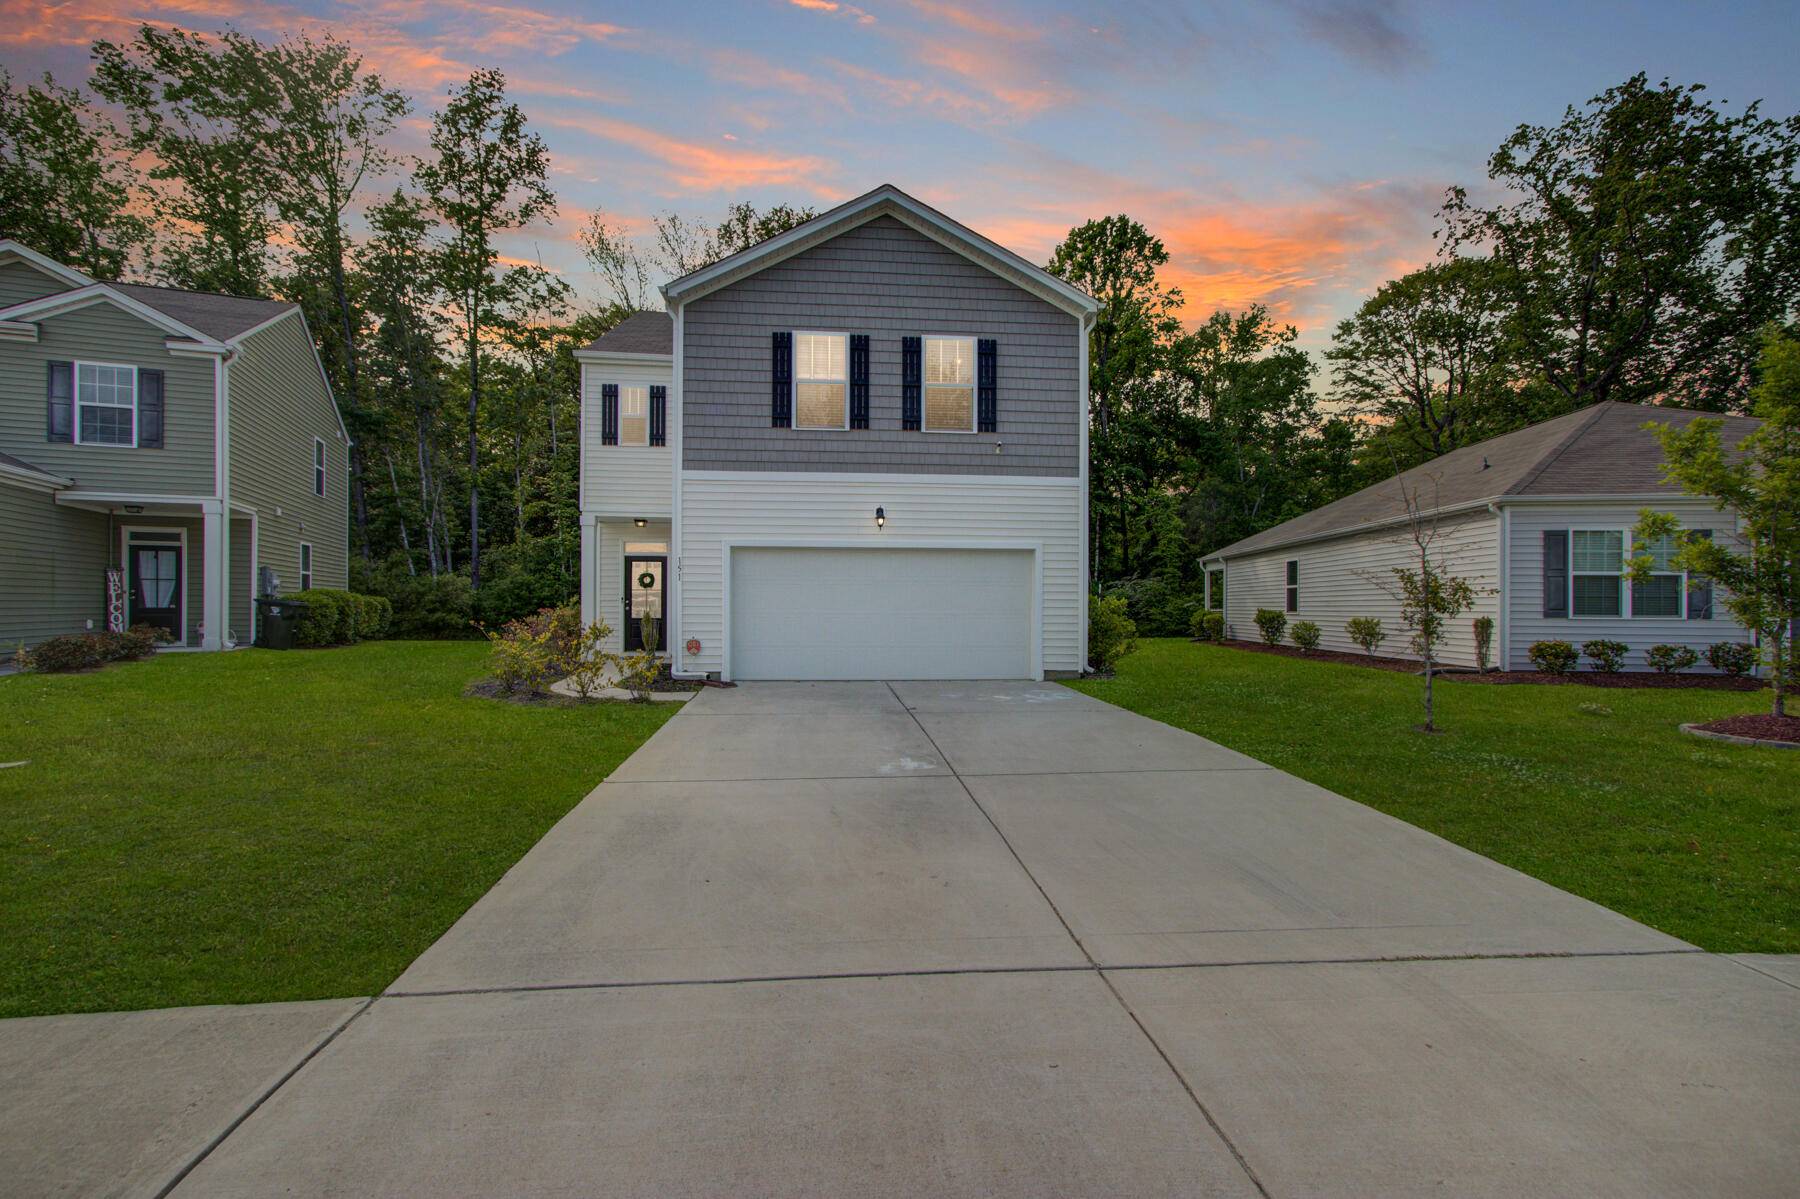 151 Stoney Creek Way Moncks Corner, SC 29461